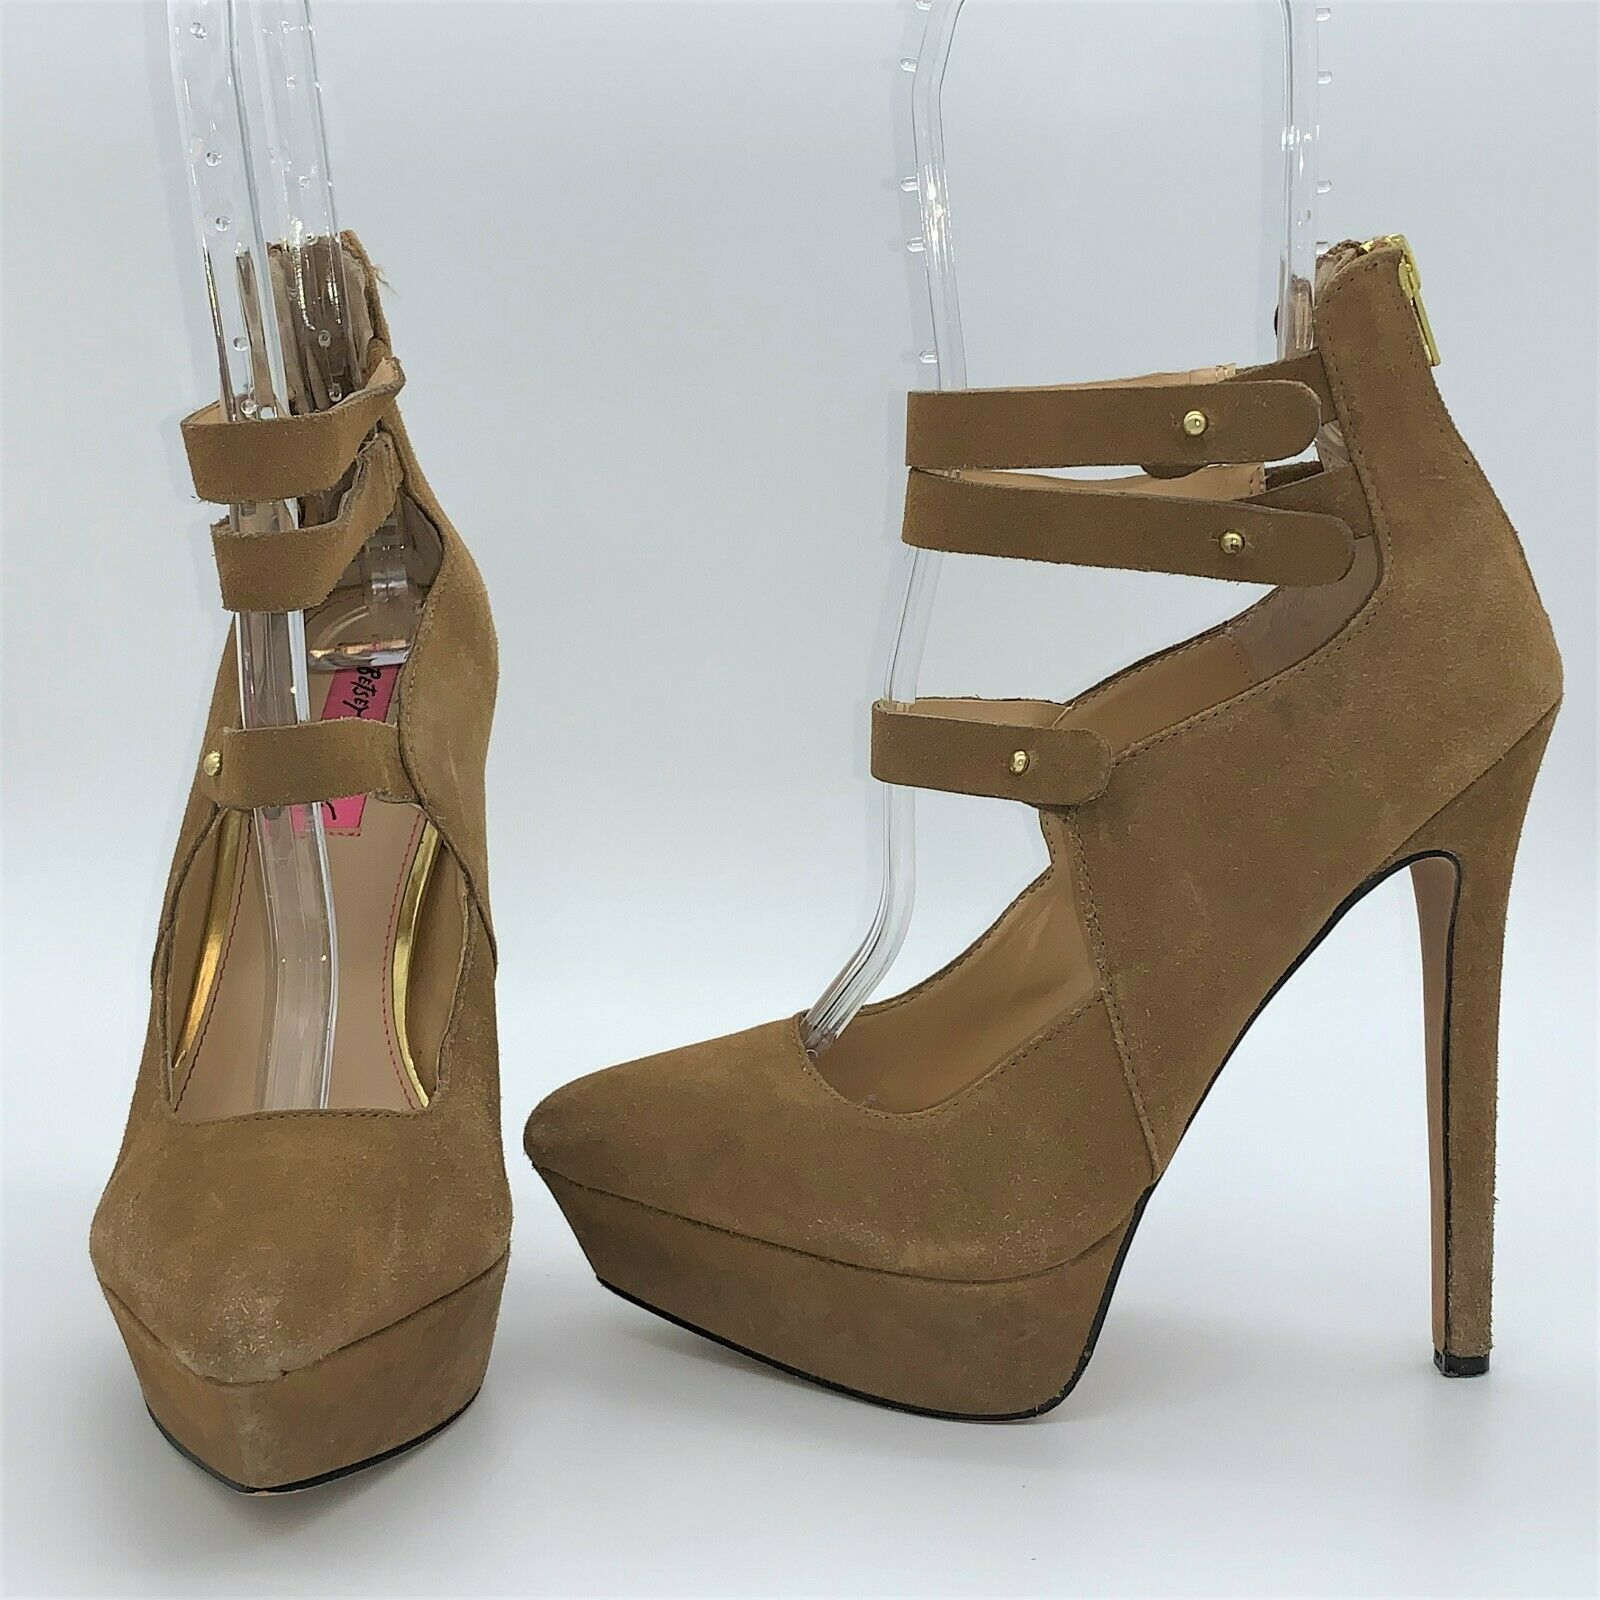 "Betsey Johnson Pennie 5"" High Heel Shoes 7.5B Camel Suede Leather Sexy Stiletto"